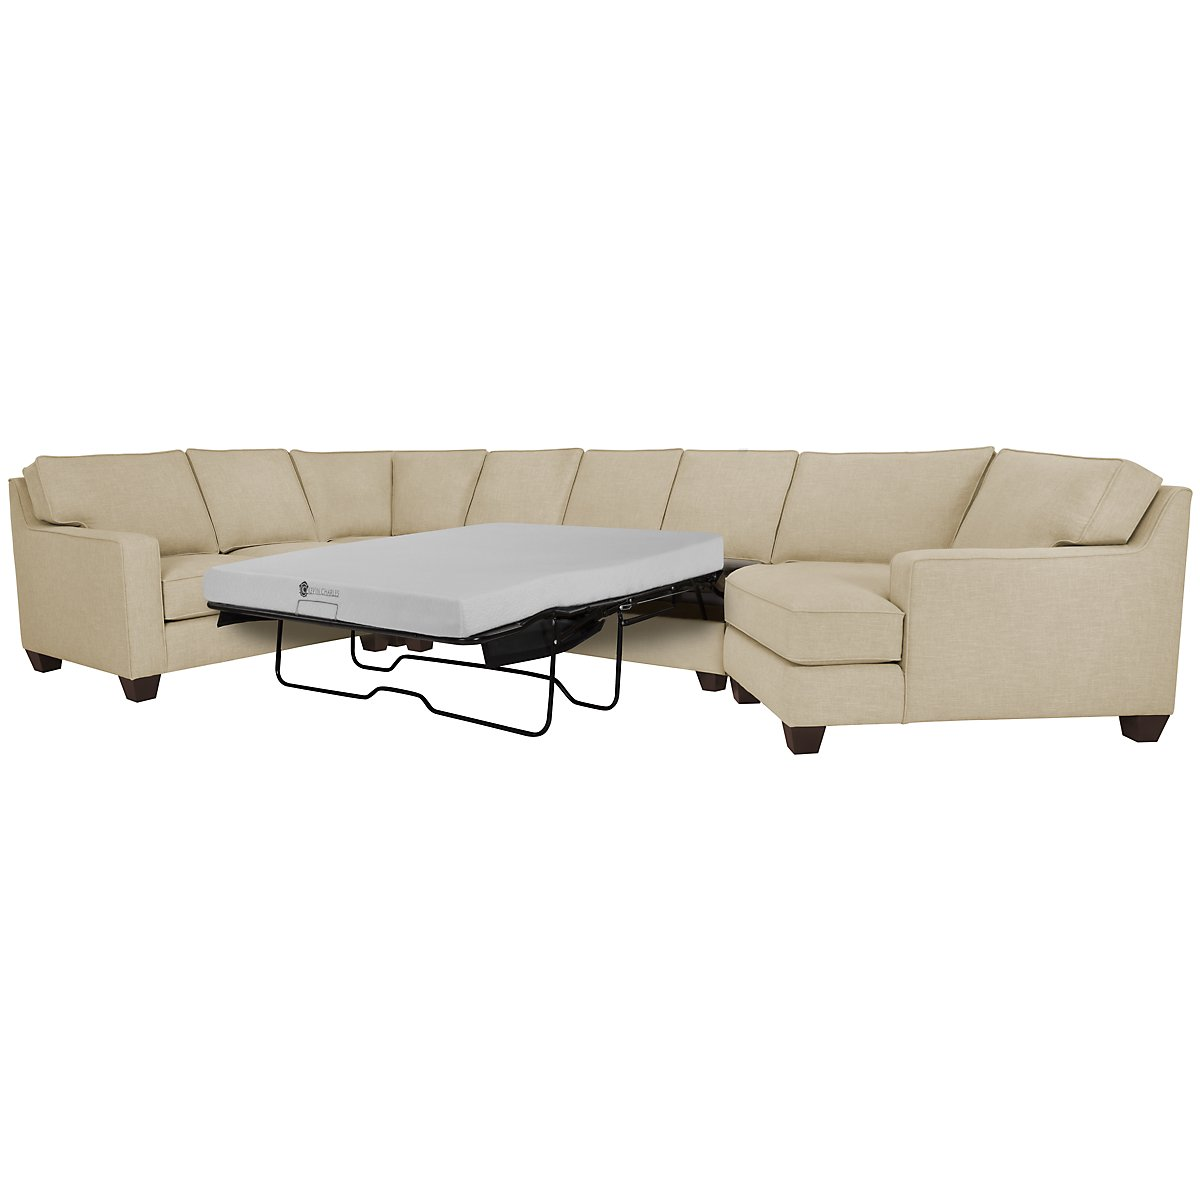 York Beige Fabric Small Right Cuddler Memory Foam Sleeper Sectional